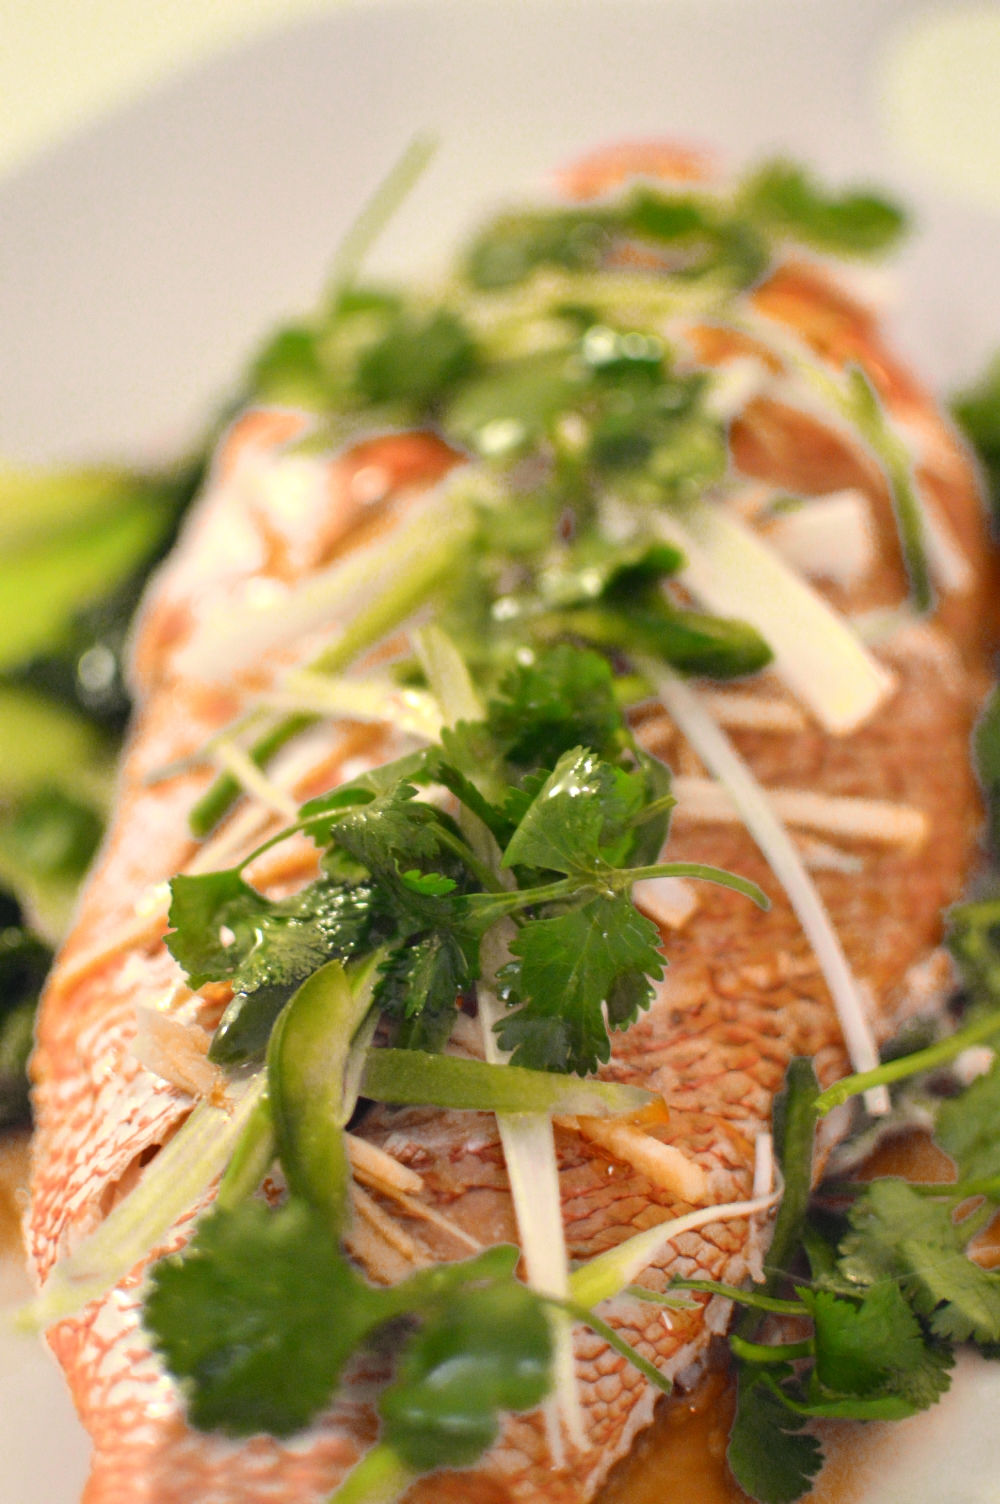 Chinese-Lunar-New-Year-Steamed-Whole-Red-Snapper-Fish-Ginger-Scallions-10.jpg